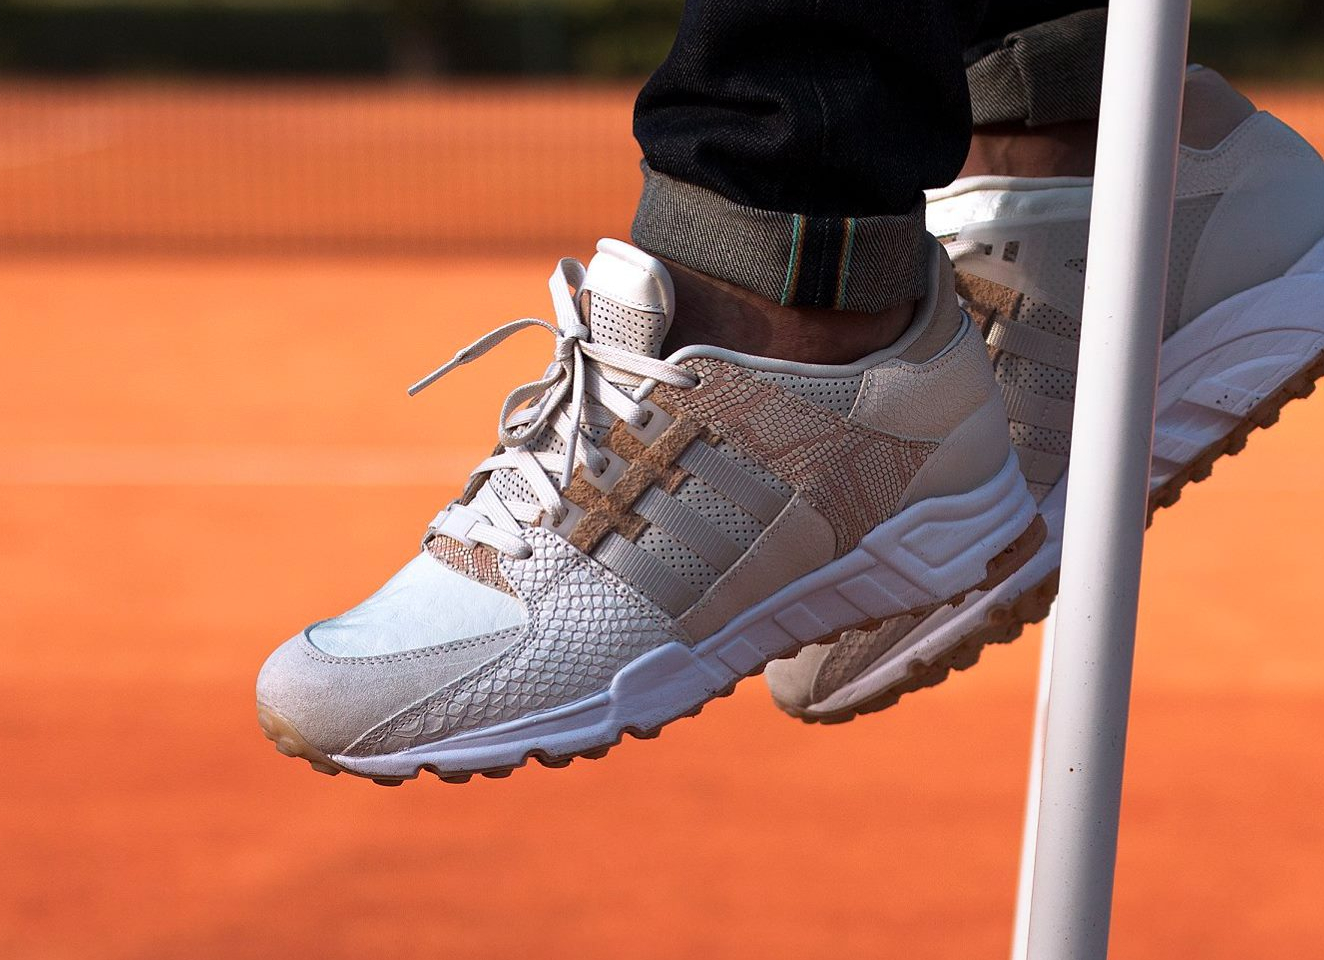 Adidas Eqt Support 93 Oddity